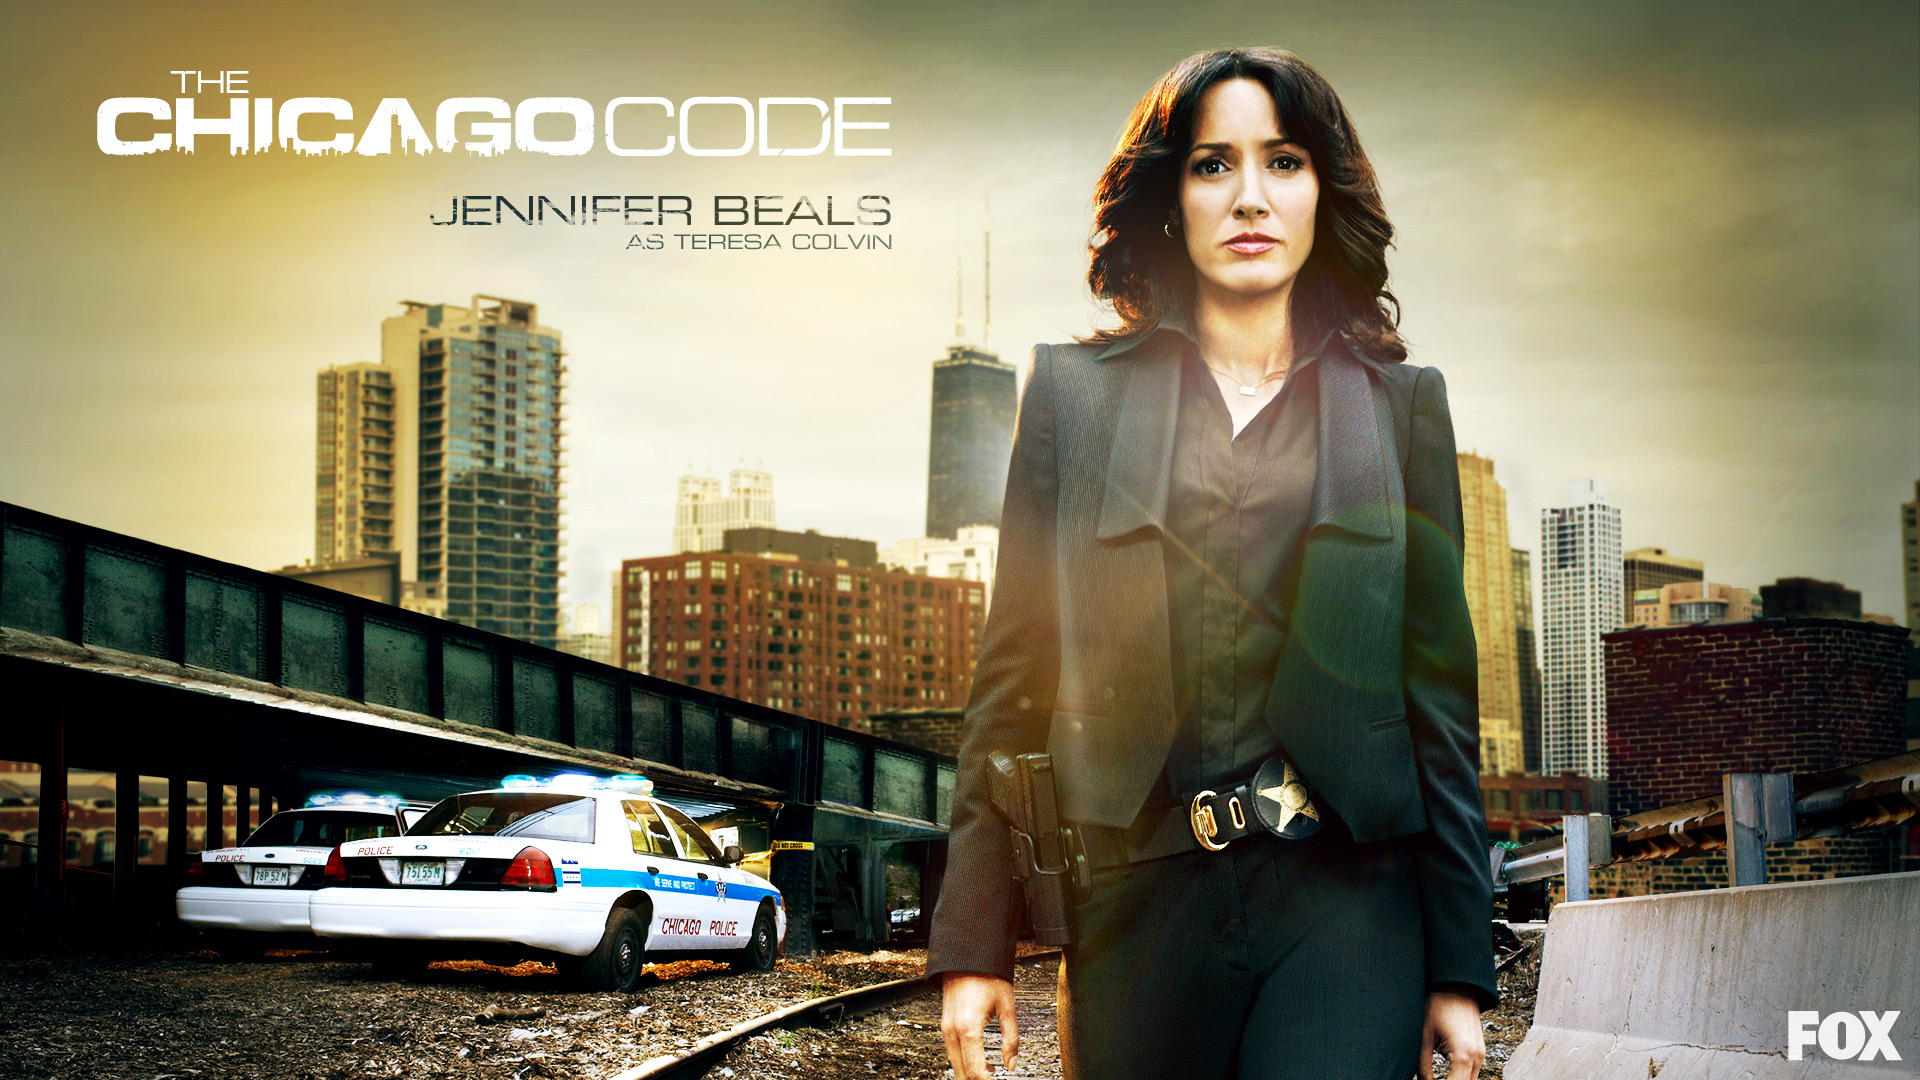 [影集] The Chicago Code (2011) The%20Chicago%20Code%20-%20Teresa%20Colvin